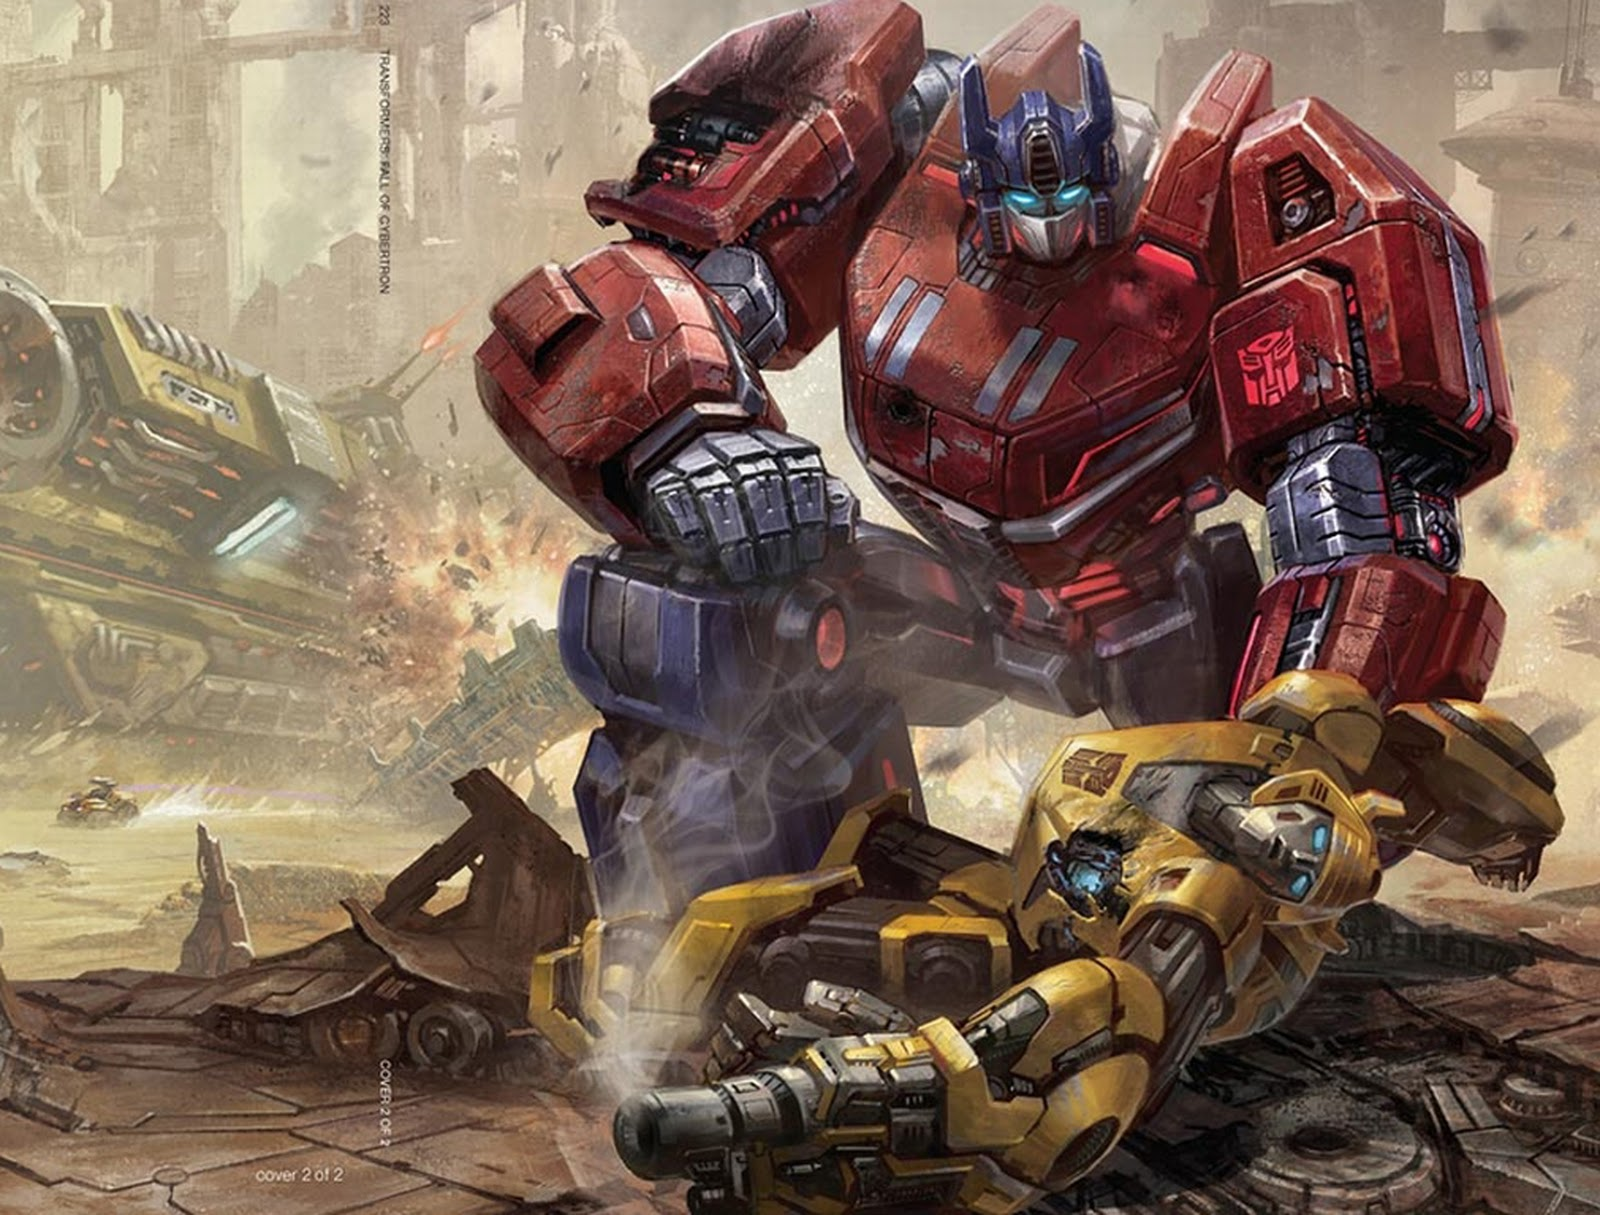 dsng 39 s sci fi megaverse transformers fall of cybertron official concept art posters. Black Bedroom Furniture Sets. Home Design Ideas